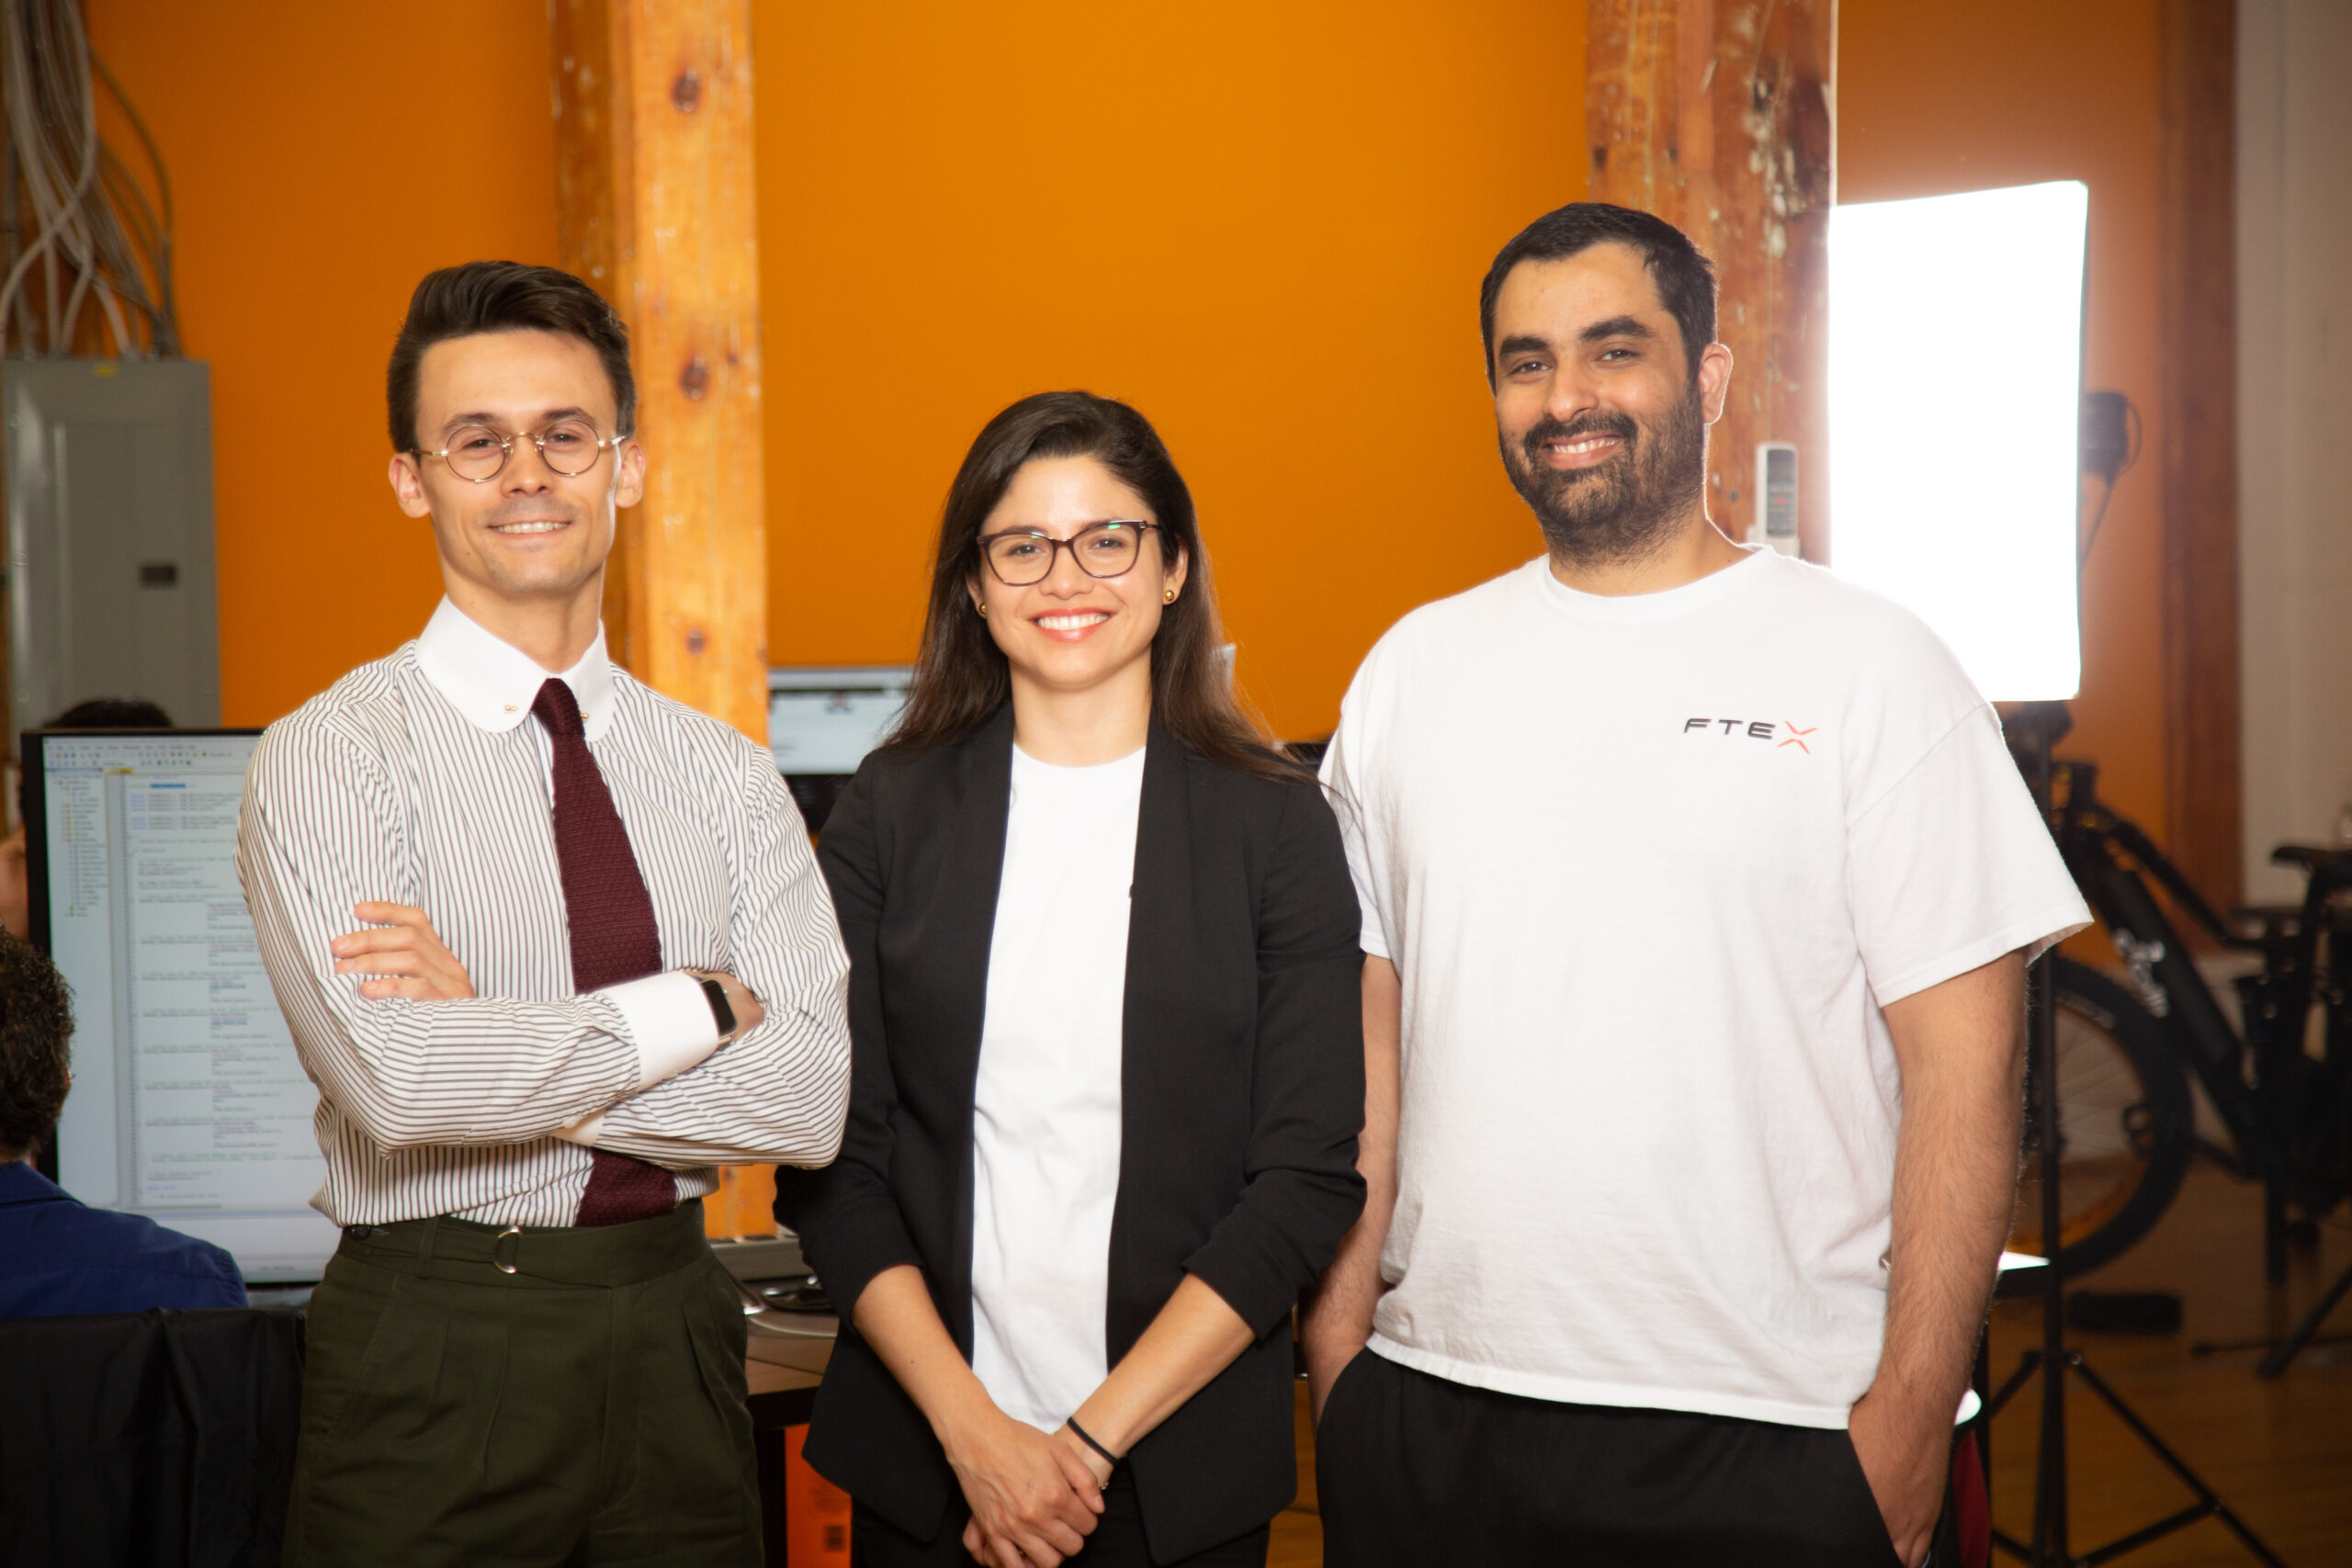 FTEX Founders, from left to right, Alexandre Cosneau, CTO, Silvana Huaman, CRO, Ramee Mossa, CEO.